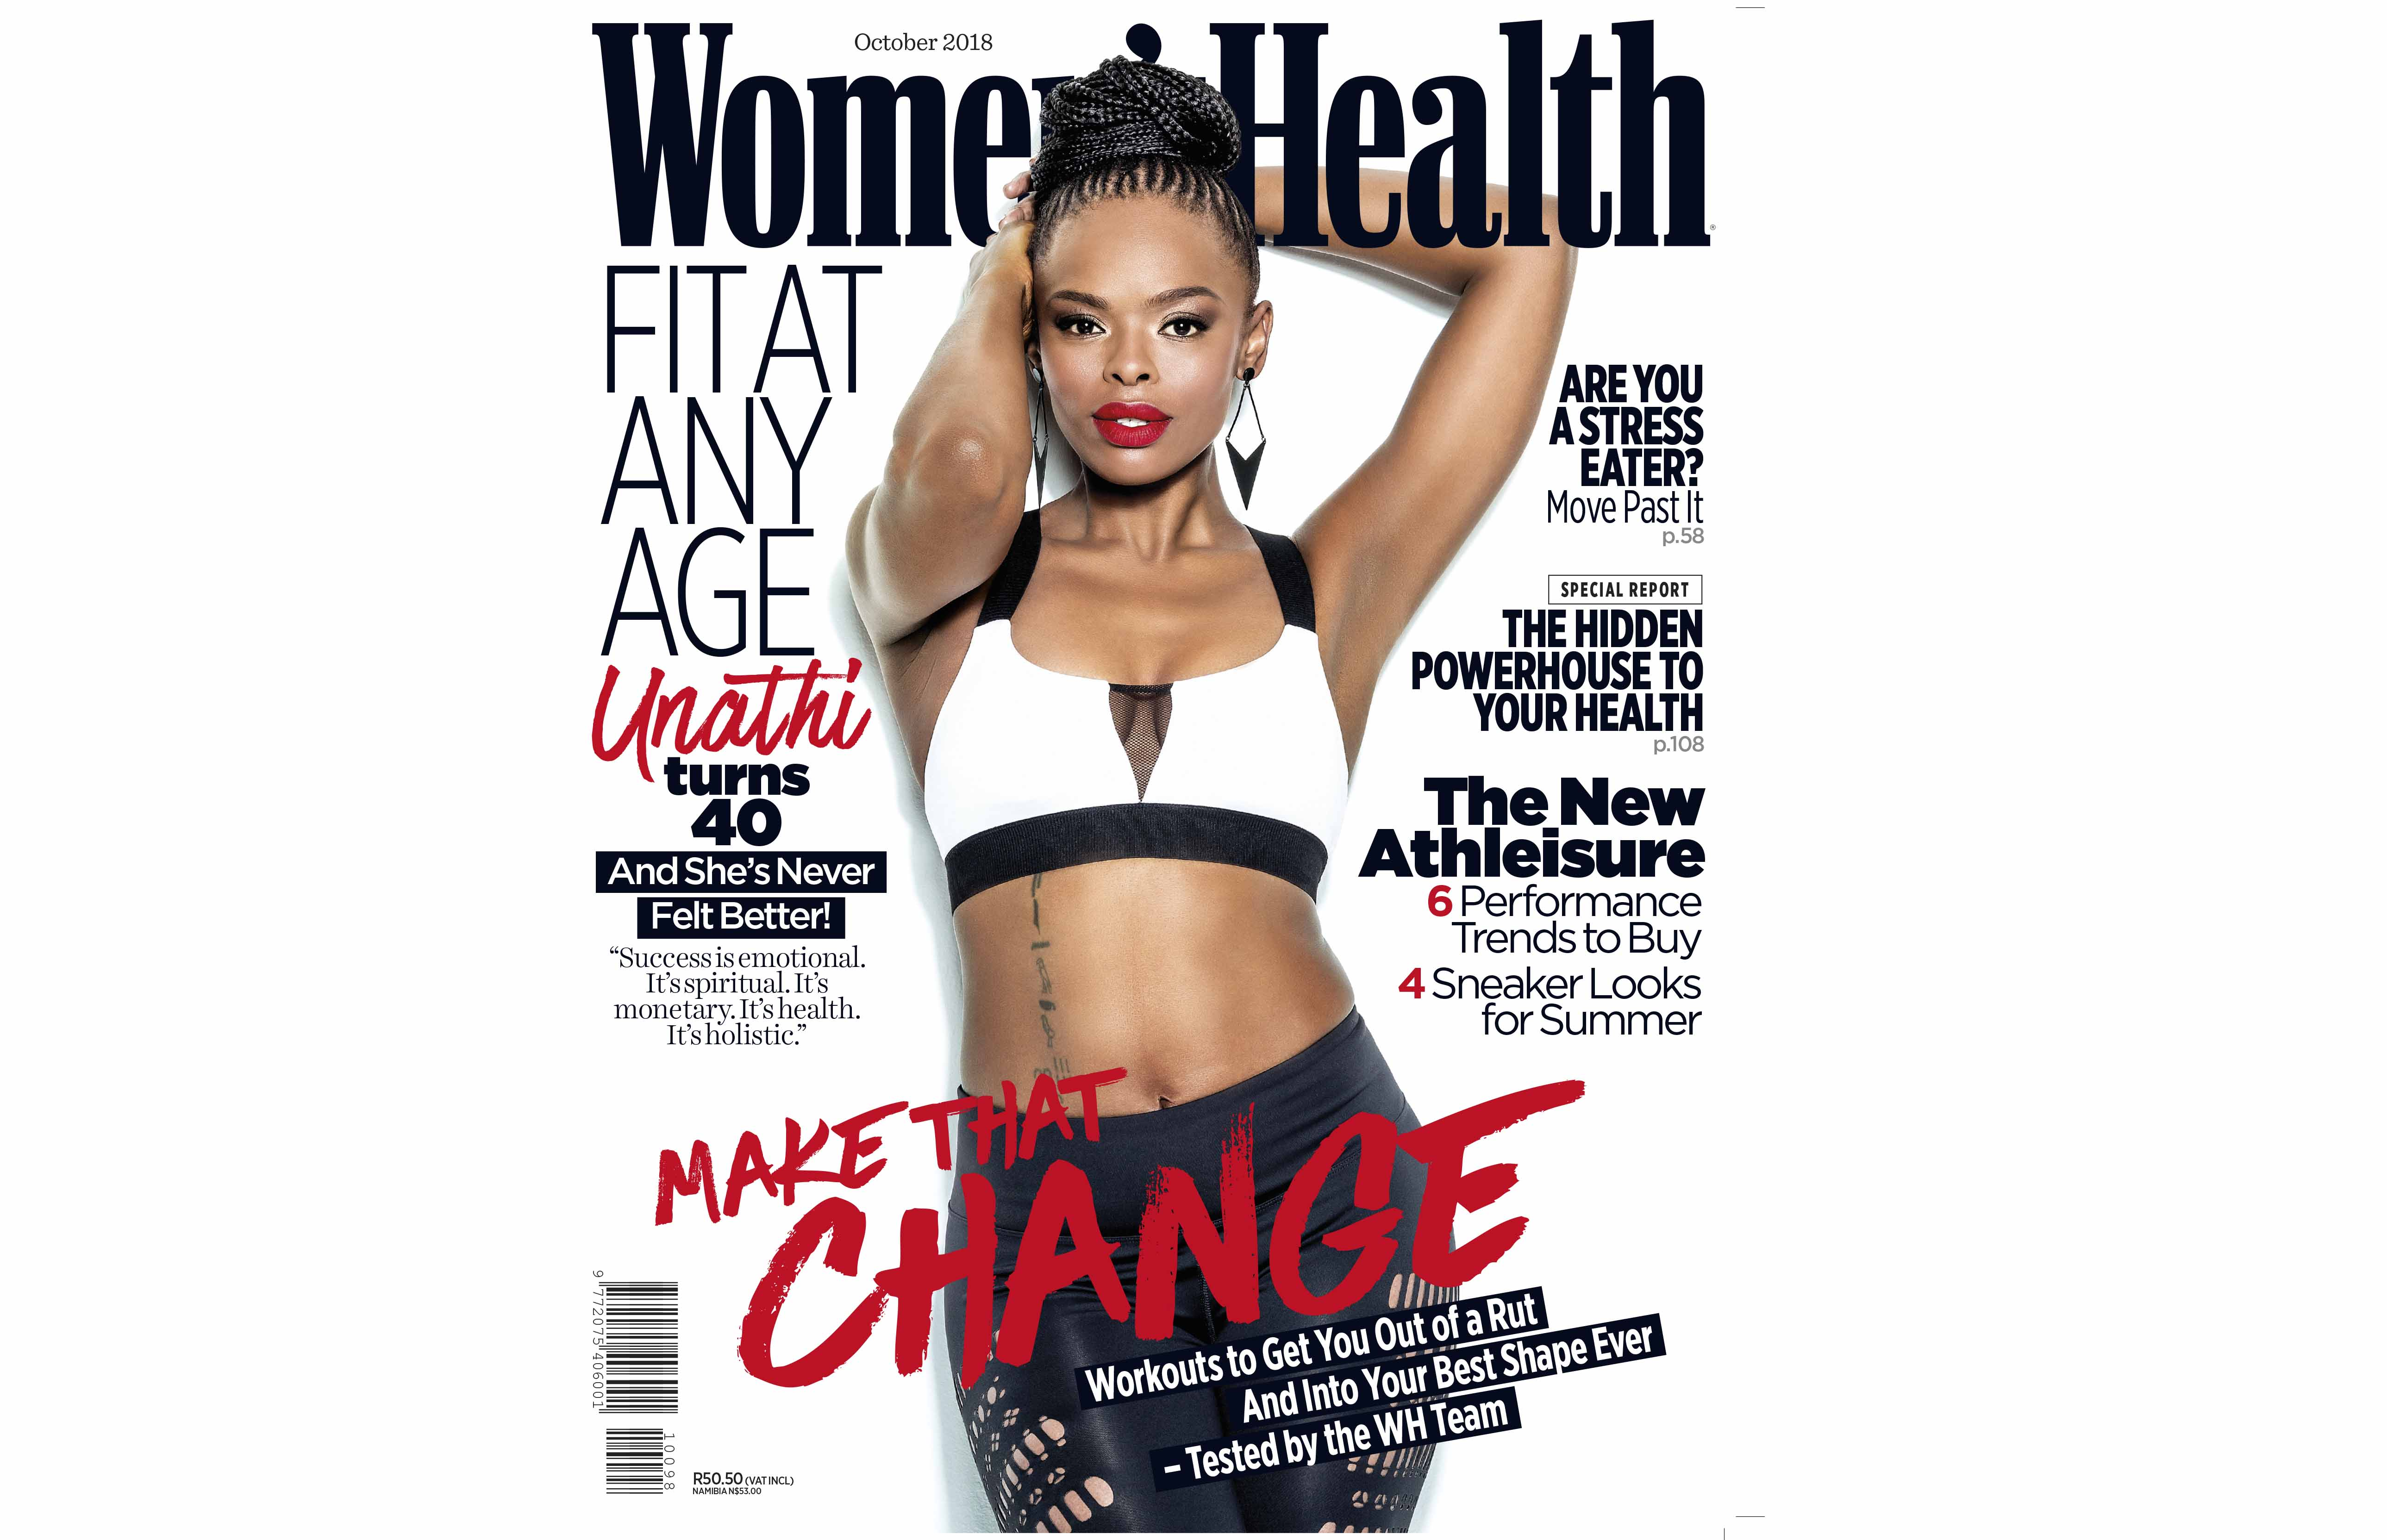 how Unathi stays in shape